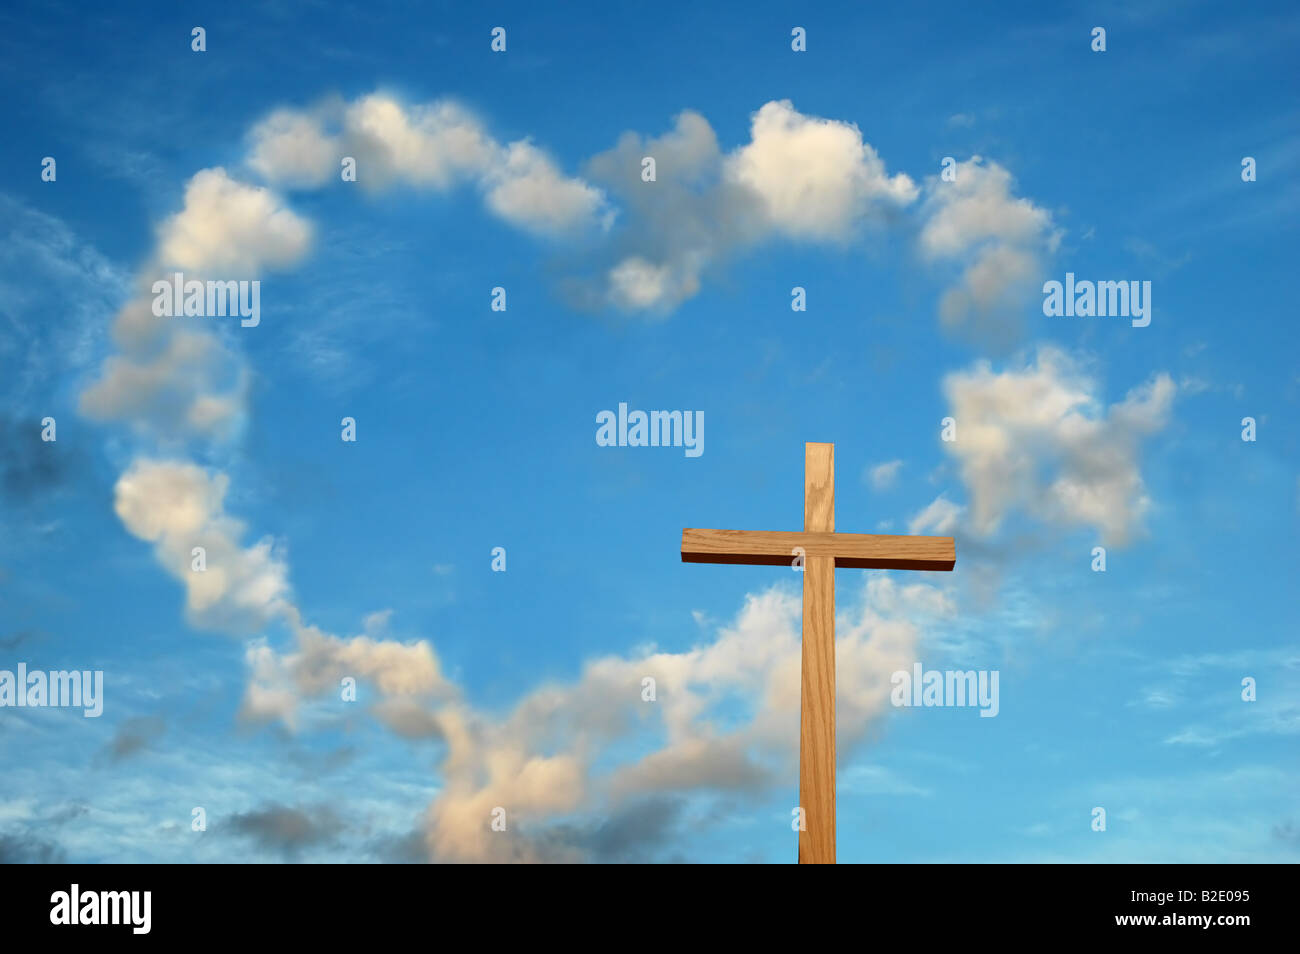 wooden cross and heart shaped clouds in the background stock photo